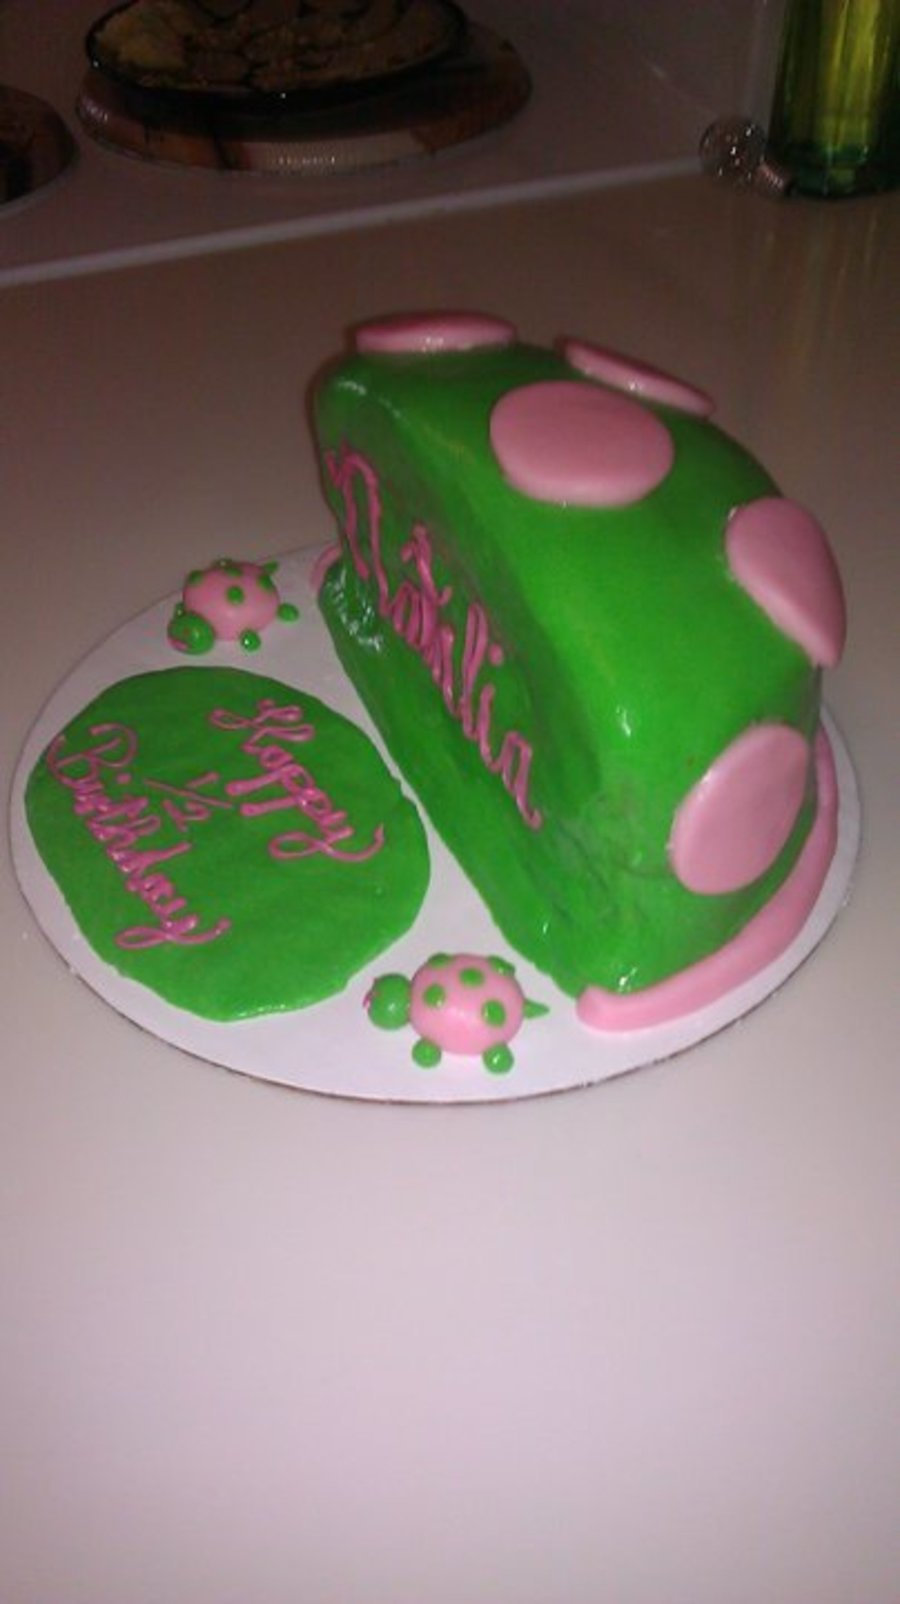 Half Of A Birthday Cake For My Daughter Turning 6 Months Old I Thought It Would